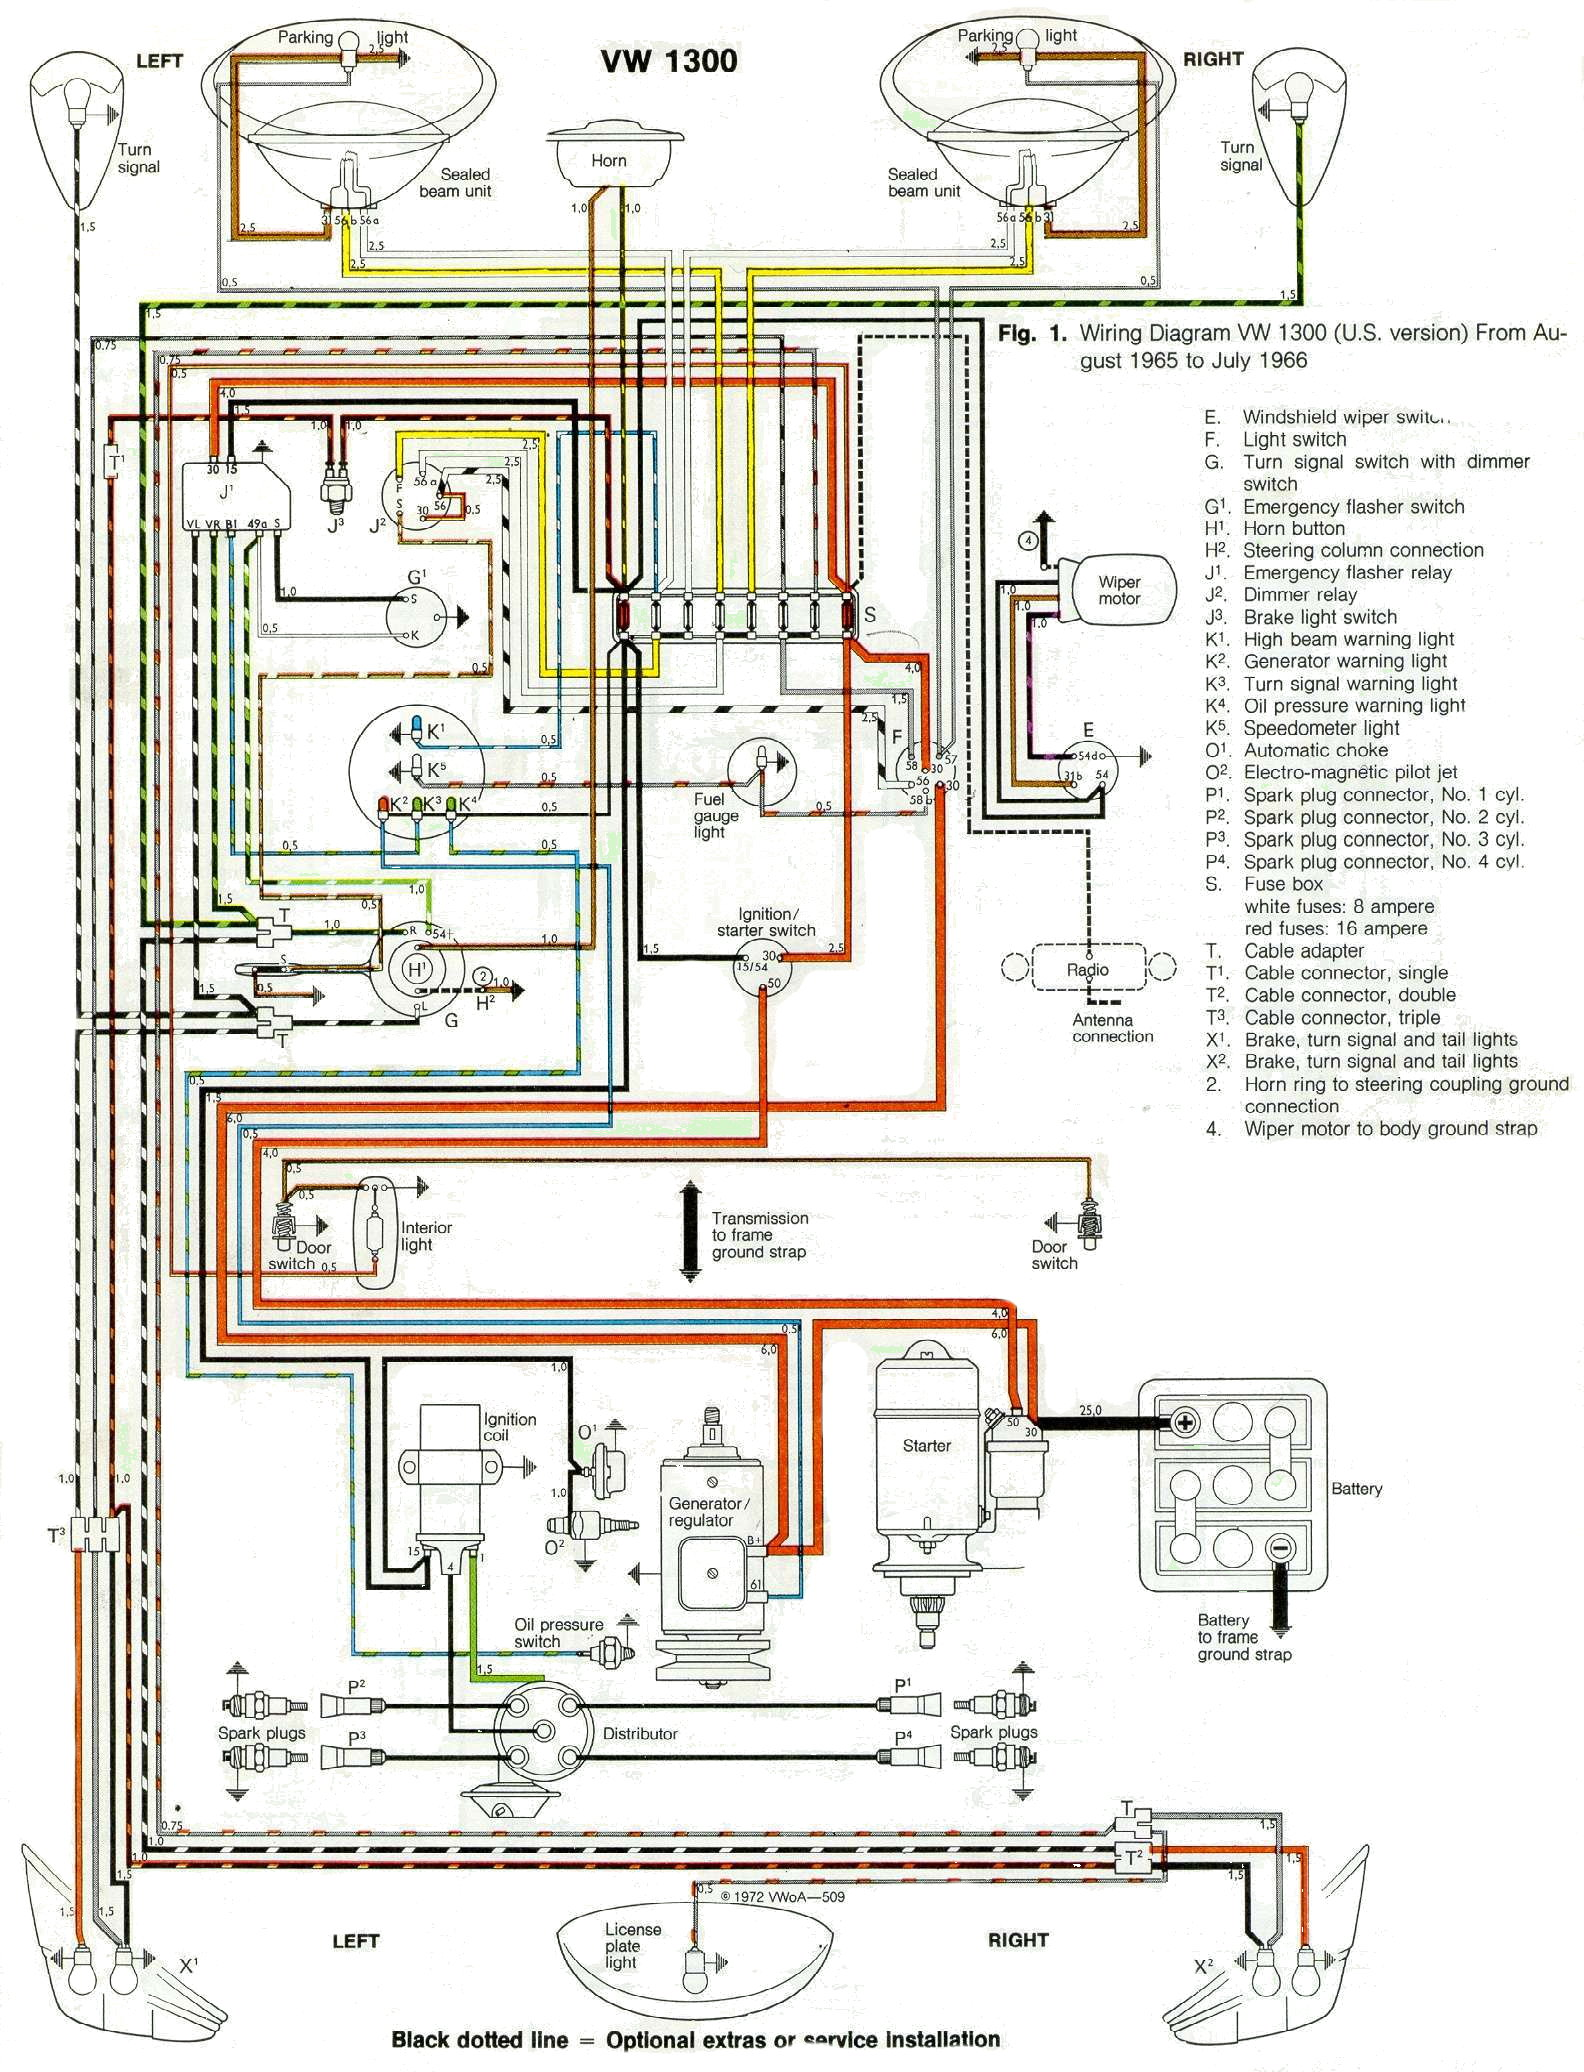 1972 Pontiac Wiring Diagram Example Electrical Grand Prix 1966